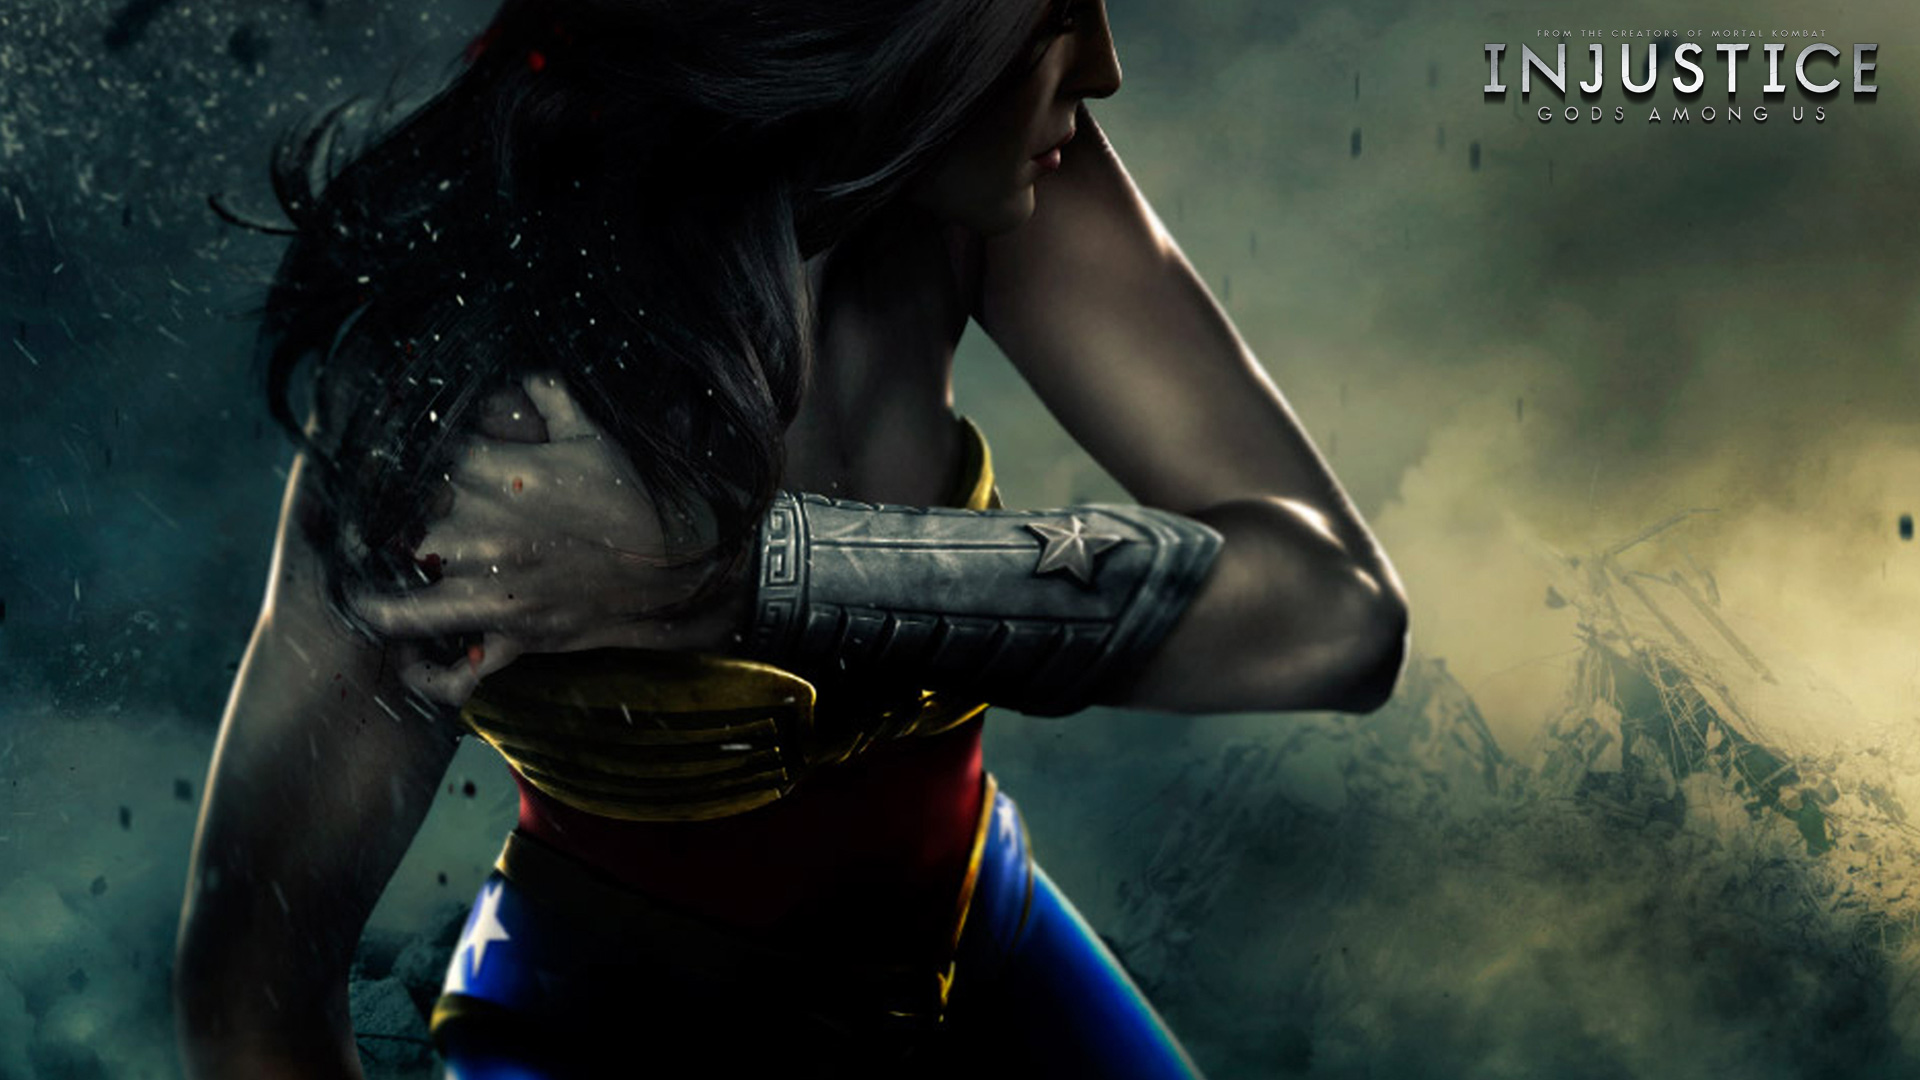 Injustice Gods Among Us Wallpaper 16